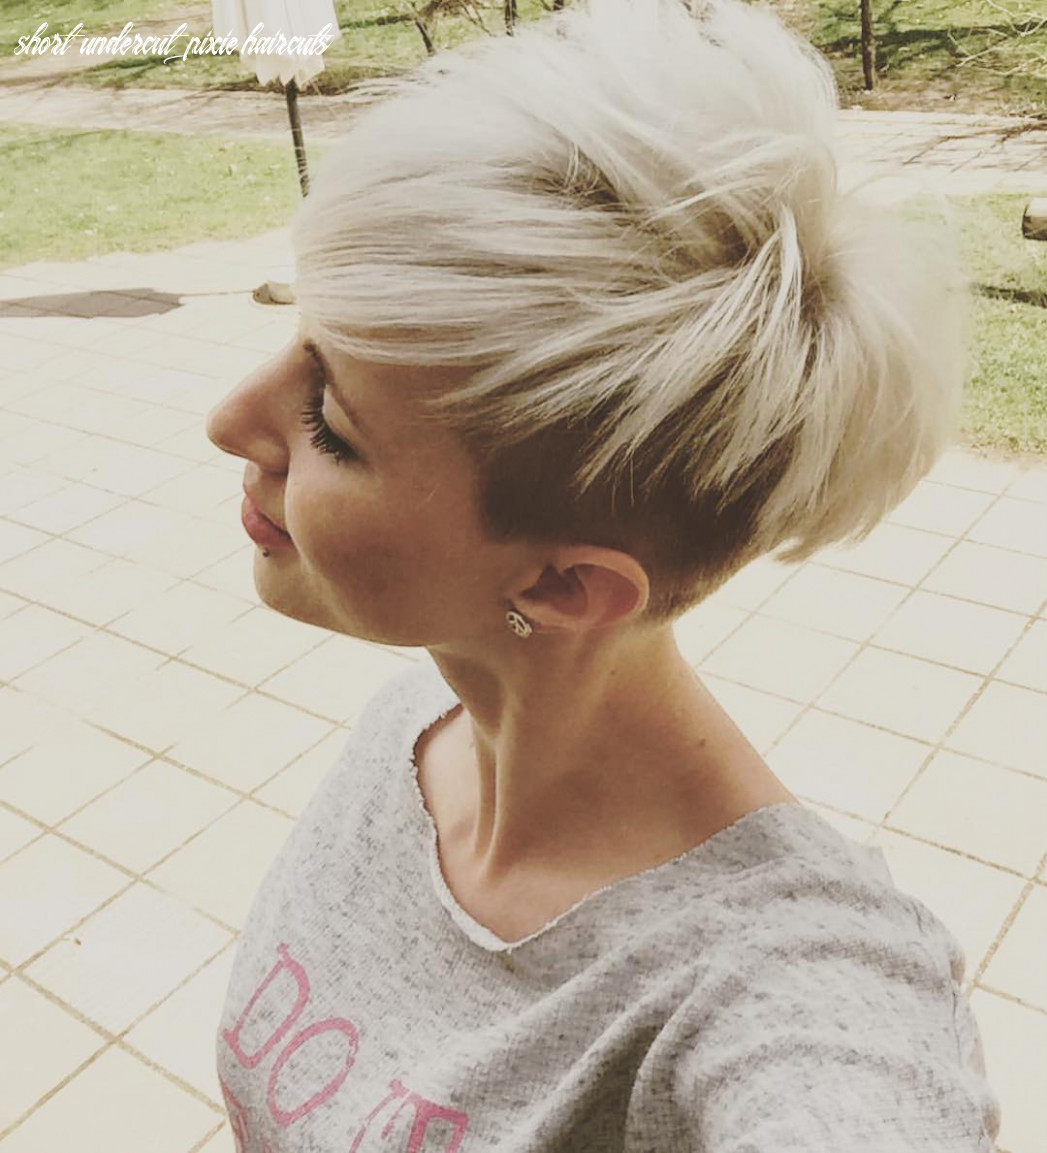 10 stylish pixie haircuts for female nicestyles short undercut pixie haircuts